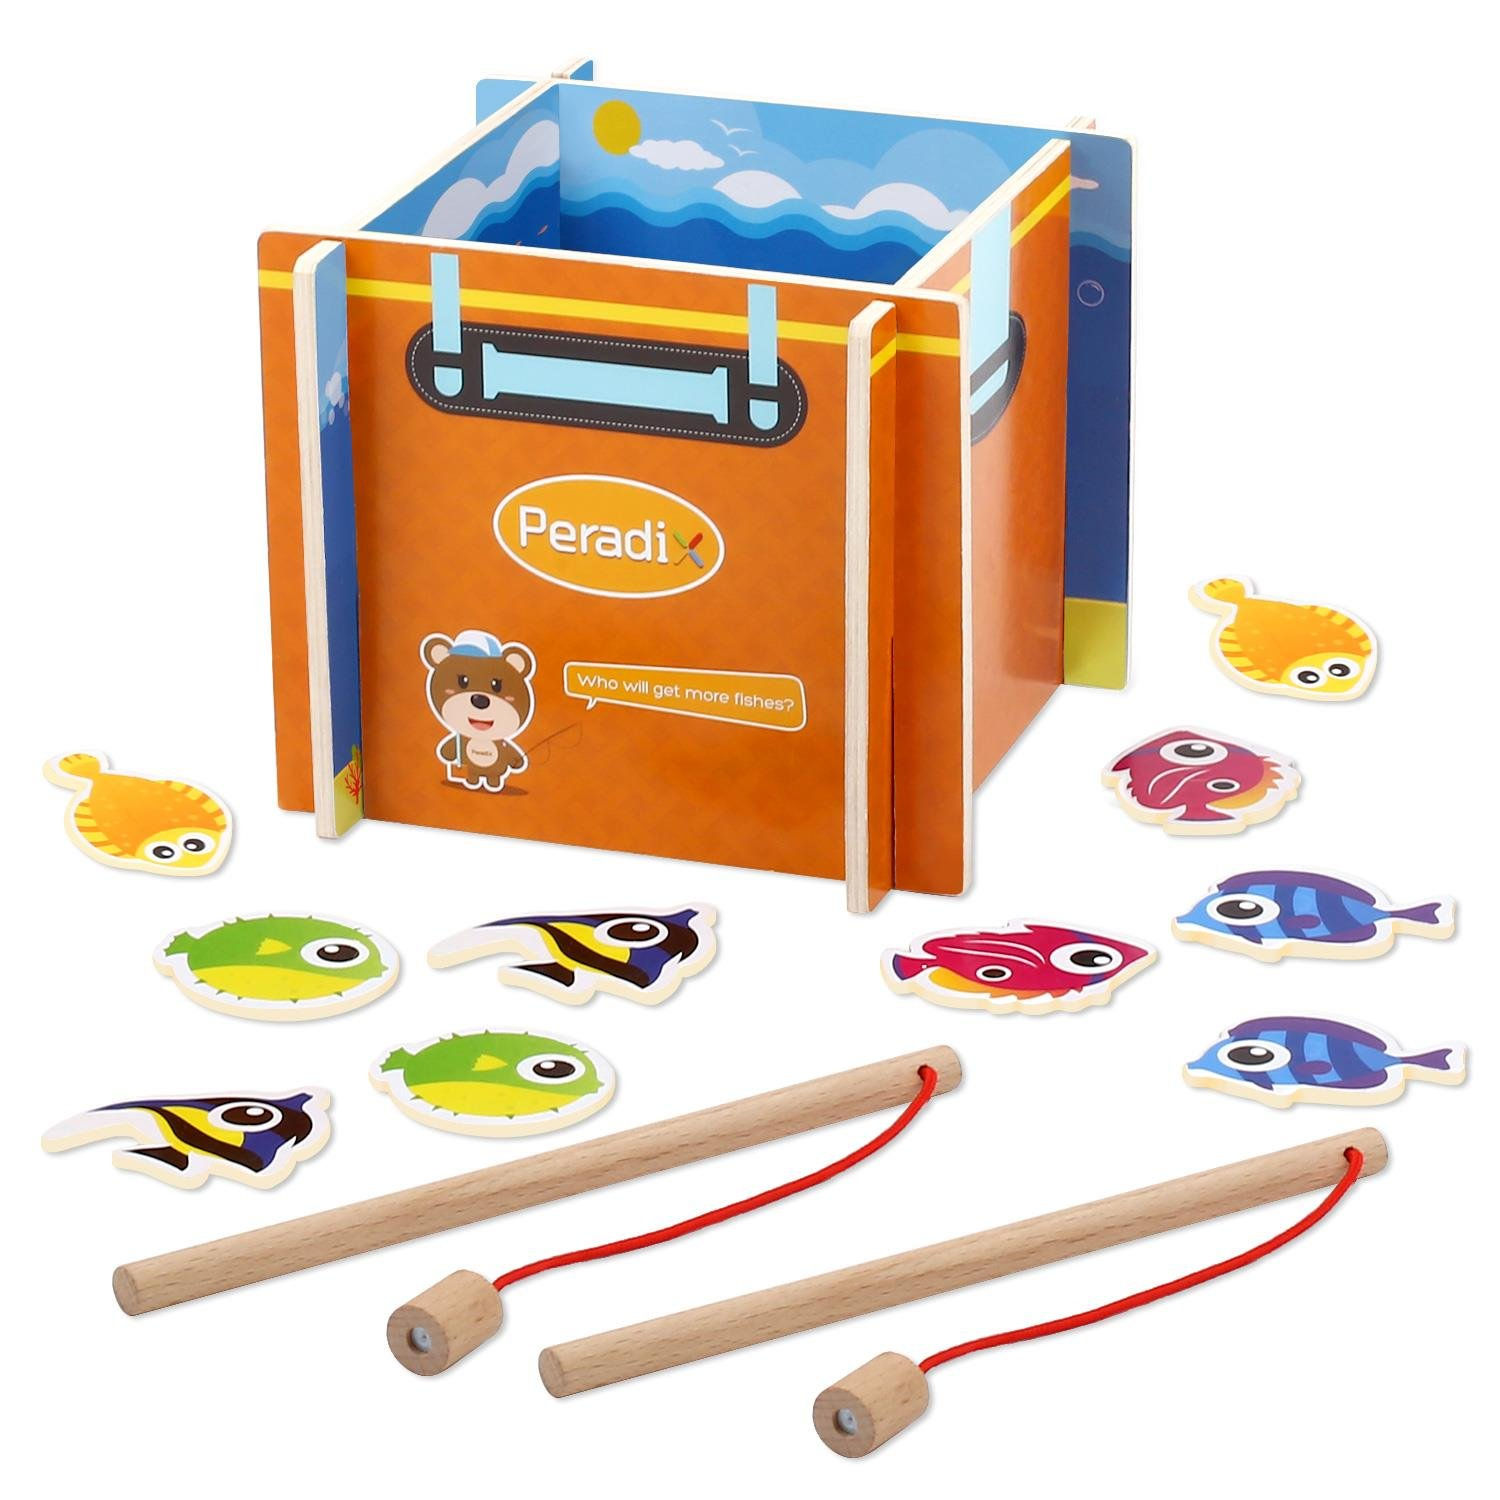 Peradix Wooden Fishing Game Toys Set for Toddlers Wooden Magnetic Puzzle Board with Kids Play Magnetic Fishing Rods Pole Activity Game Kits Mesh Storage Bag Gift Bag